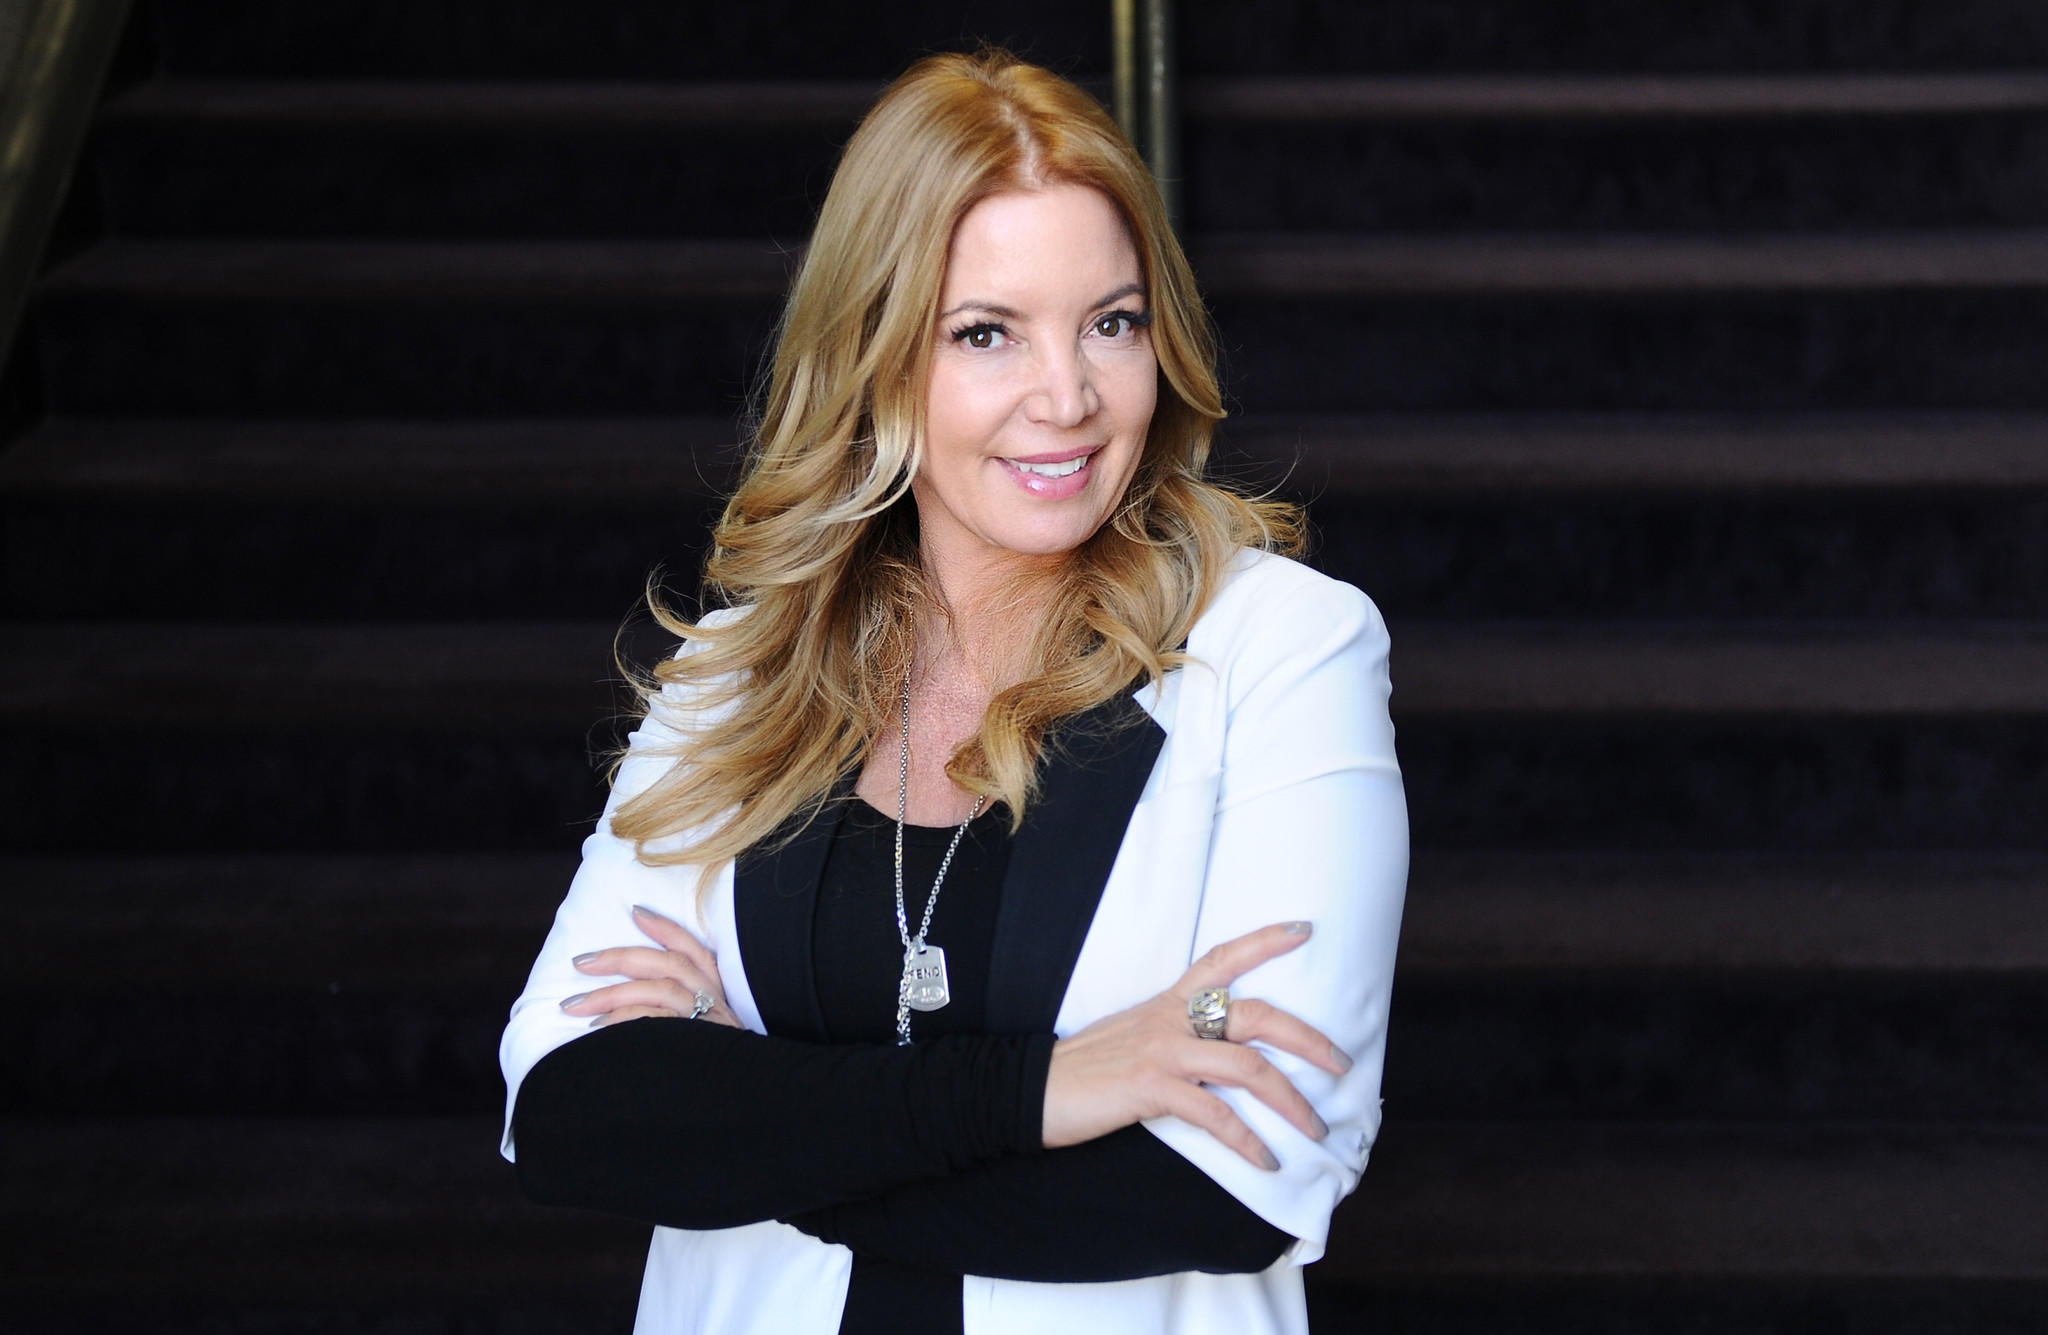 Jeanie Buss, co-owner and president of the Lakers, lived at Pickfair in the 1980s.